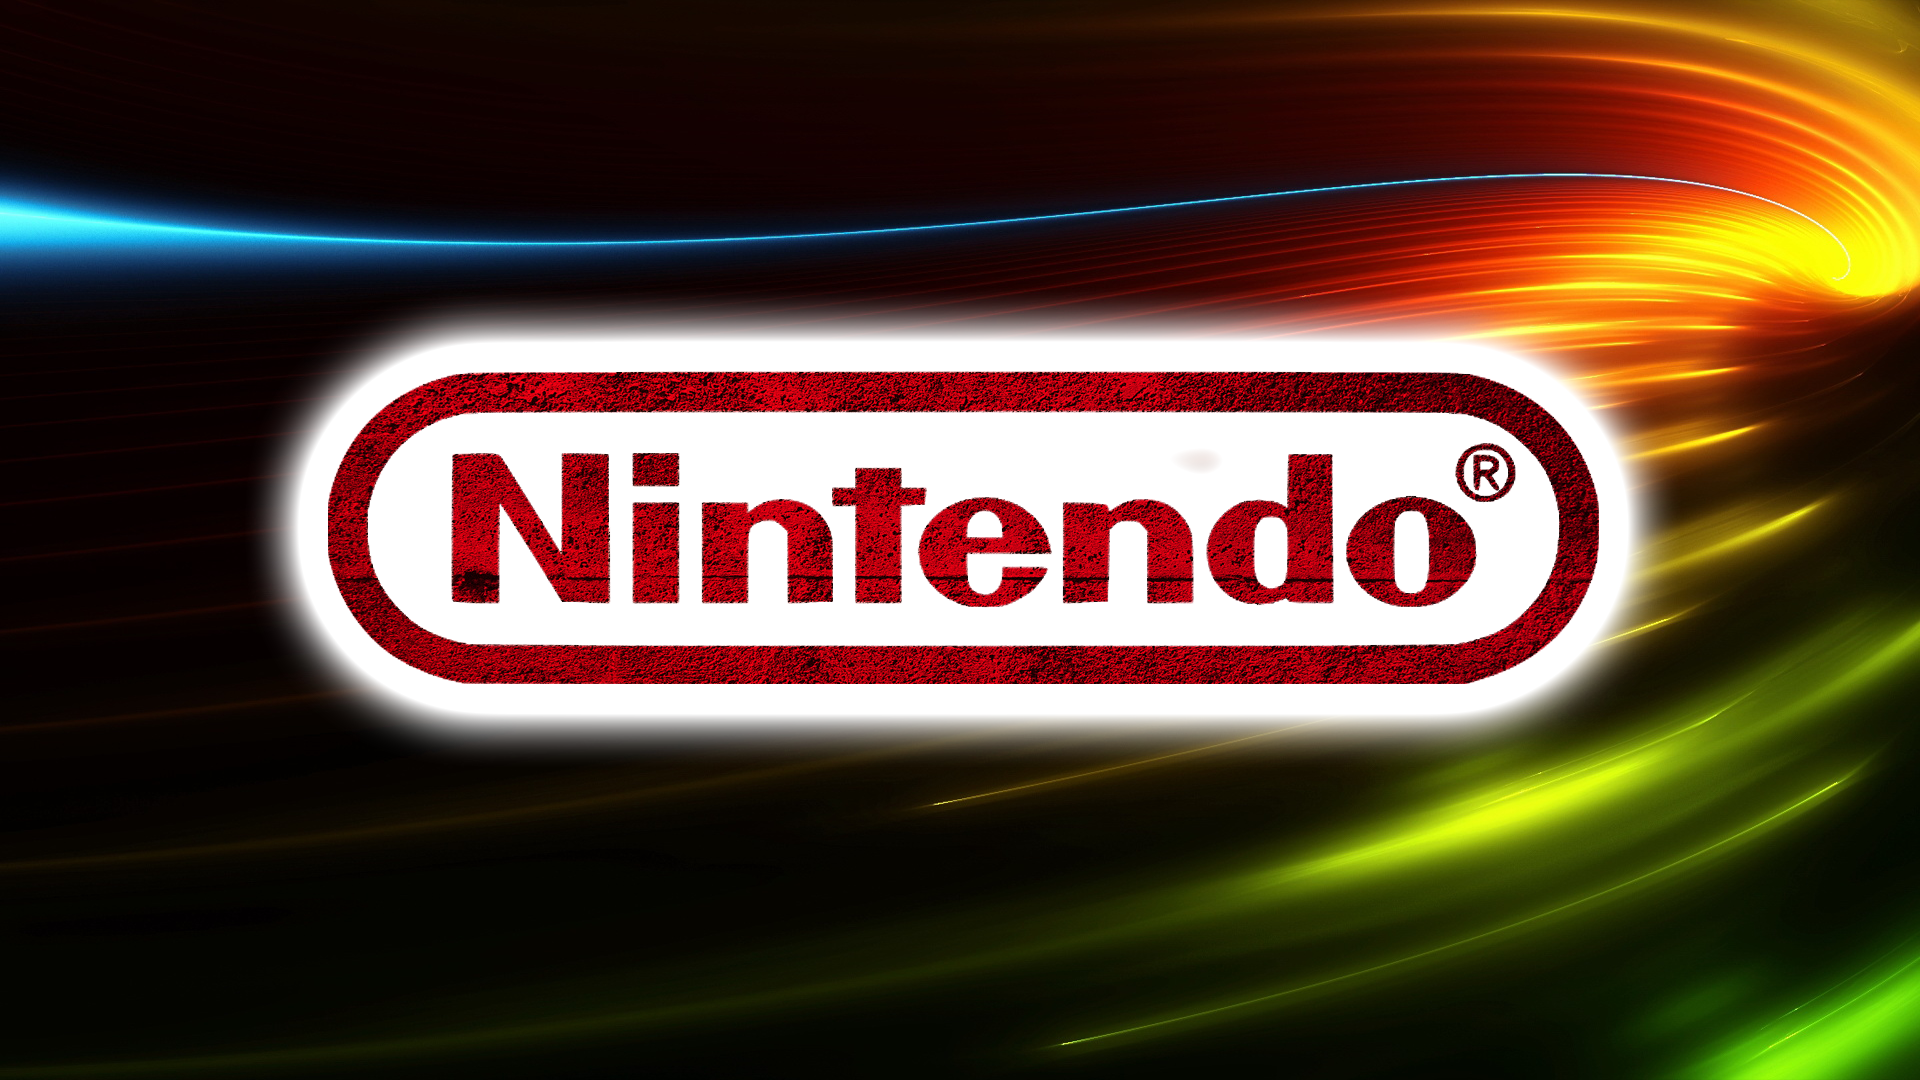 The Nintendo Official Website Is The Home Of The Nintendo Switch Console Nintendo 3DS And Nintendo 2DS Systems Plus New And Classic Games For All Ages